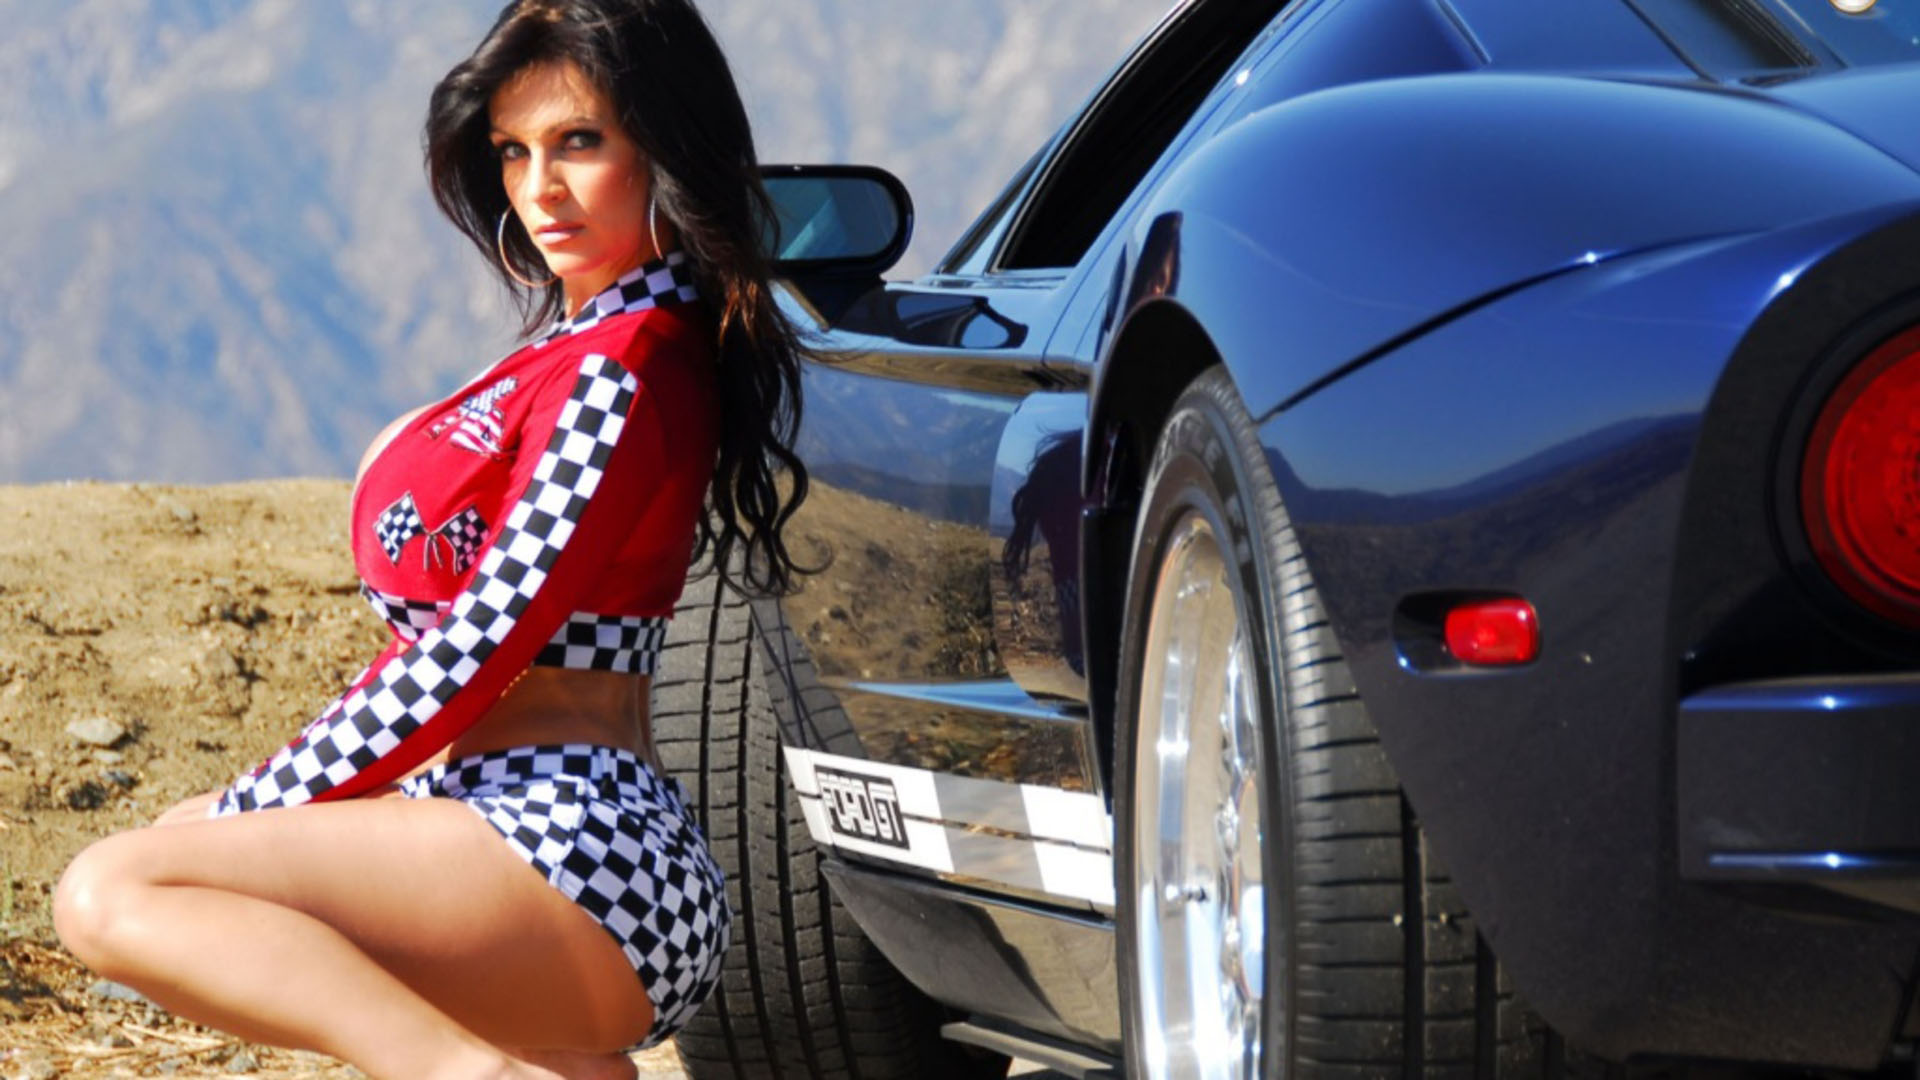 4k Wallpapers Exotic Super Sports Cars Girl With Formula 1080p Wide Screen Wallpaper 1080p 2k 4k